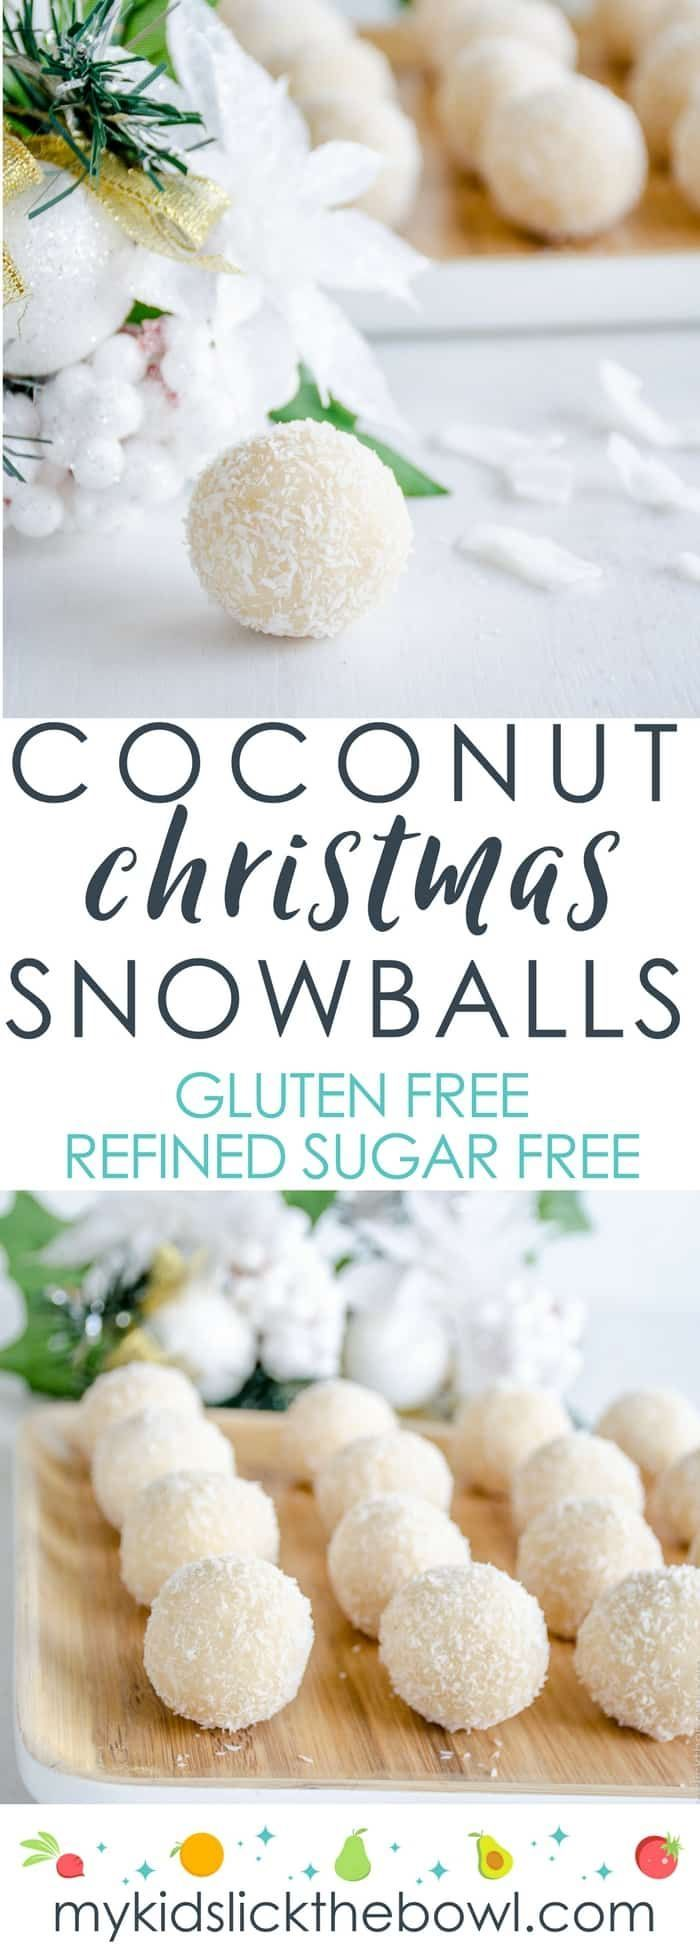 Christmas coconut snowballs, easy refined sugar-free recipe, an allergy friendly Christmas treat